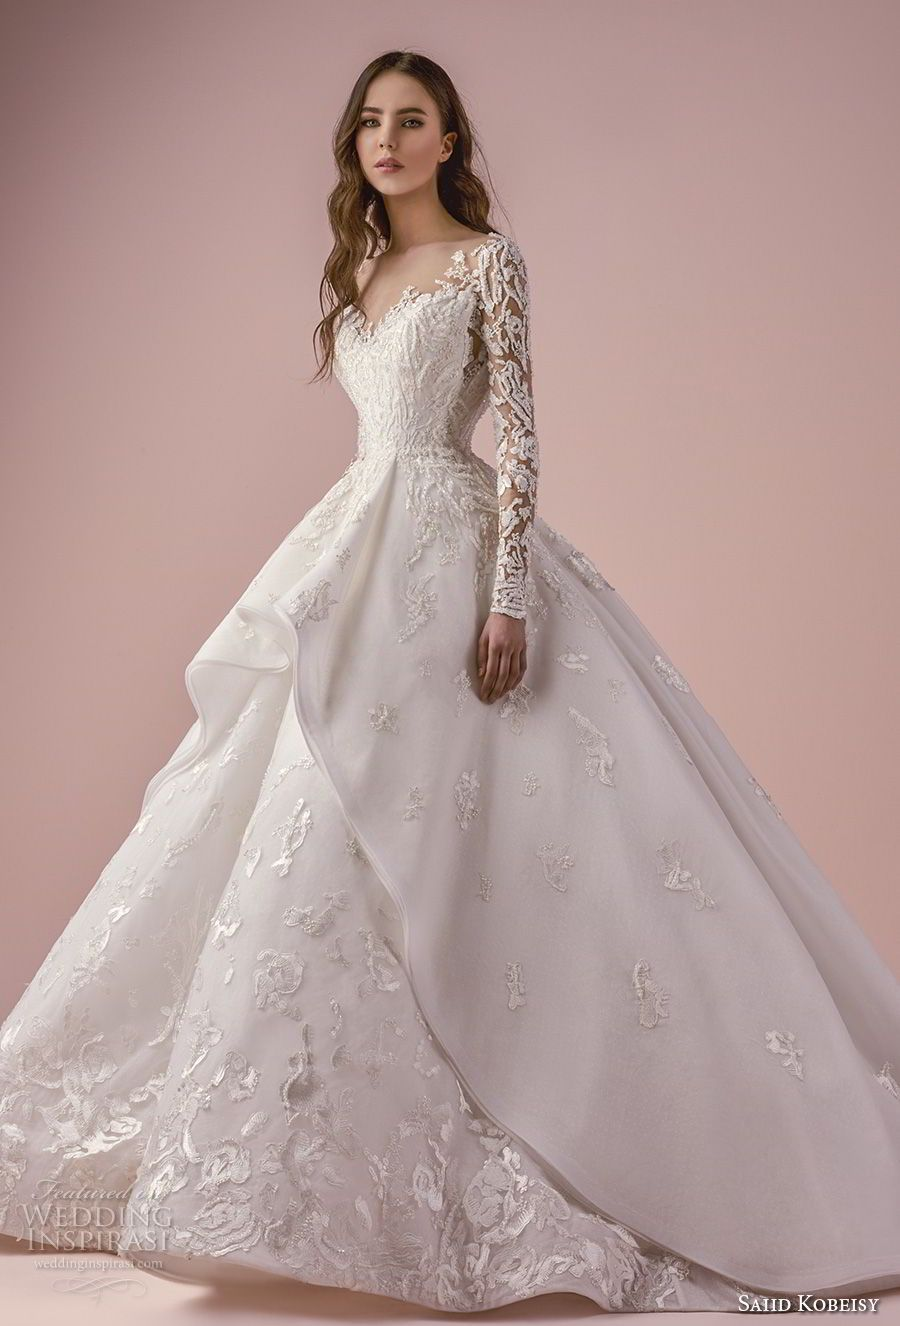 Saiid kobeisy wedding dresses chapel train ball gowns and